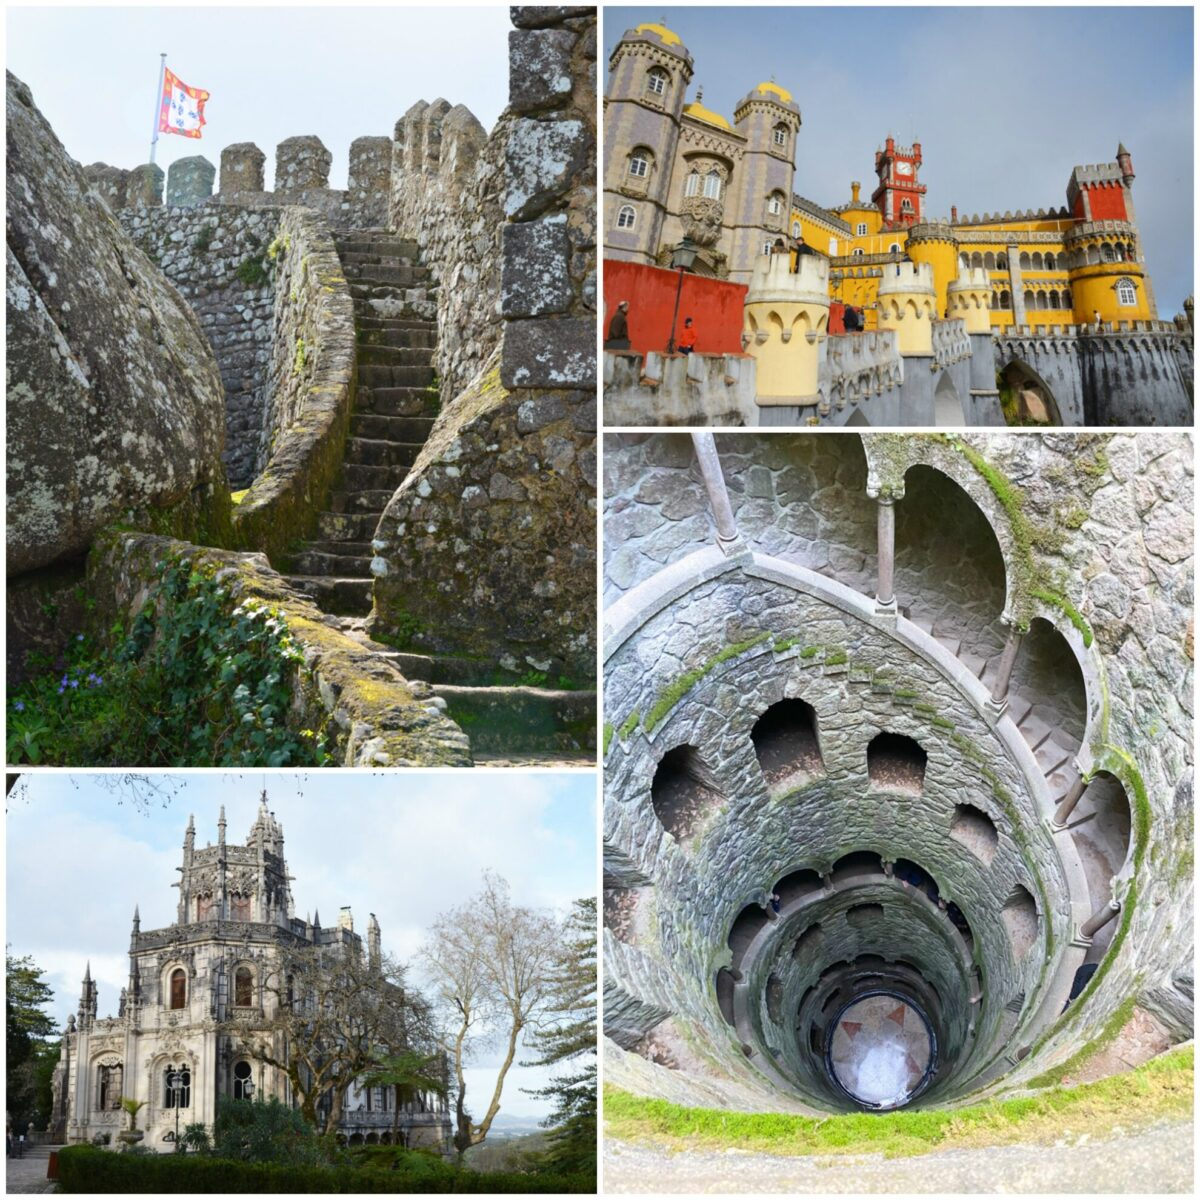 Sites in Sintra